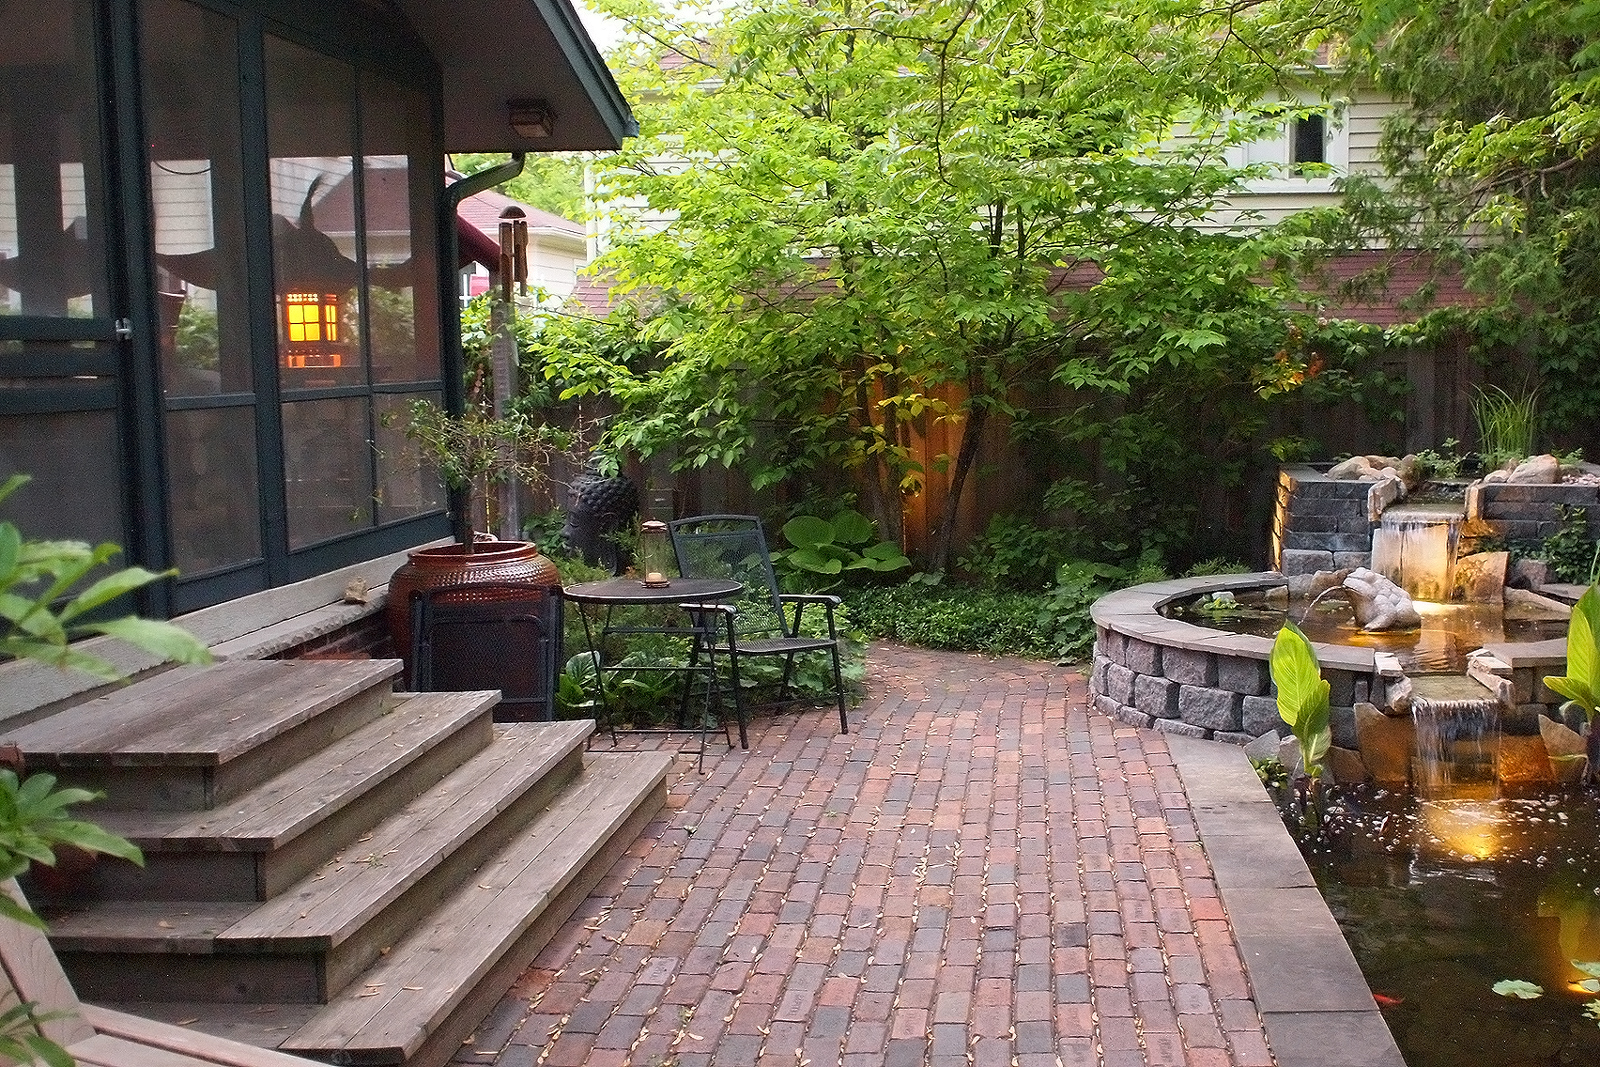 Paver Patio Ideas | Stone Patio Ideas | HouseLogic on Backyard Masonry Ideas id=16110